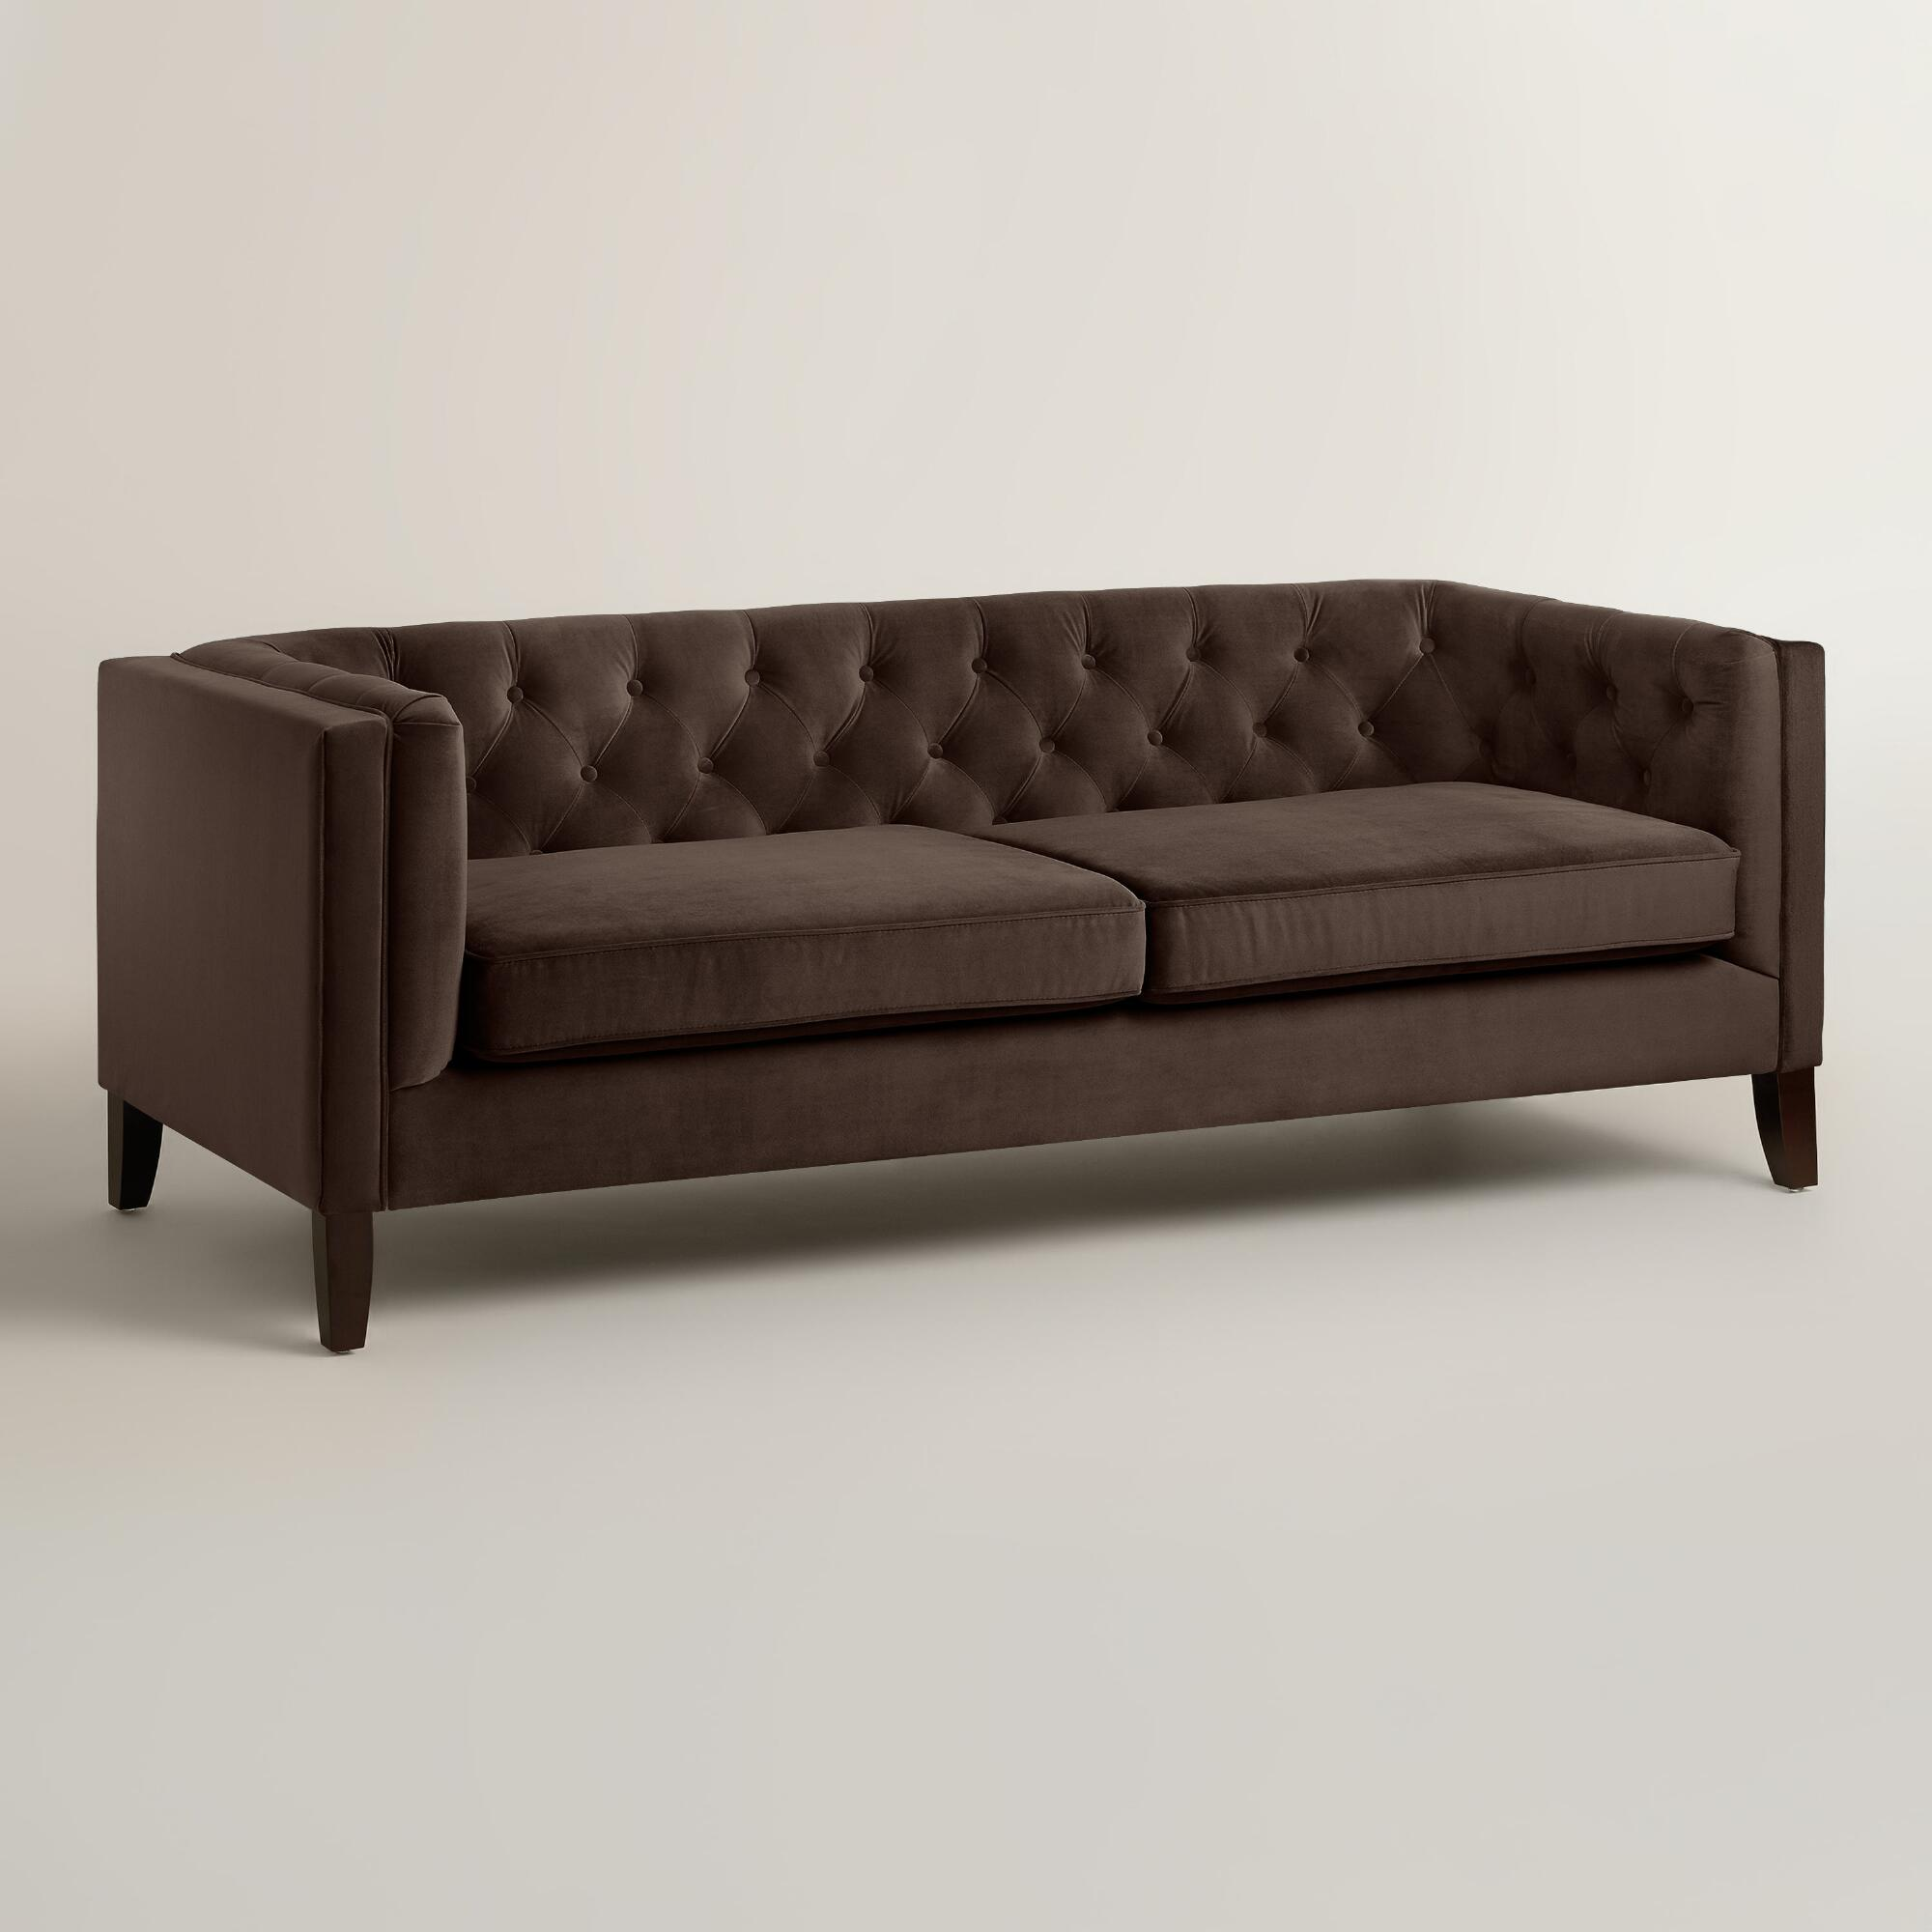 chocolate brown velvet kendall sofa world market. Black Bedroom Furniture Sets. Home Design Ideas